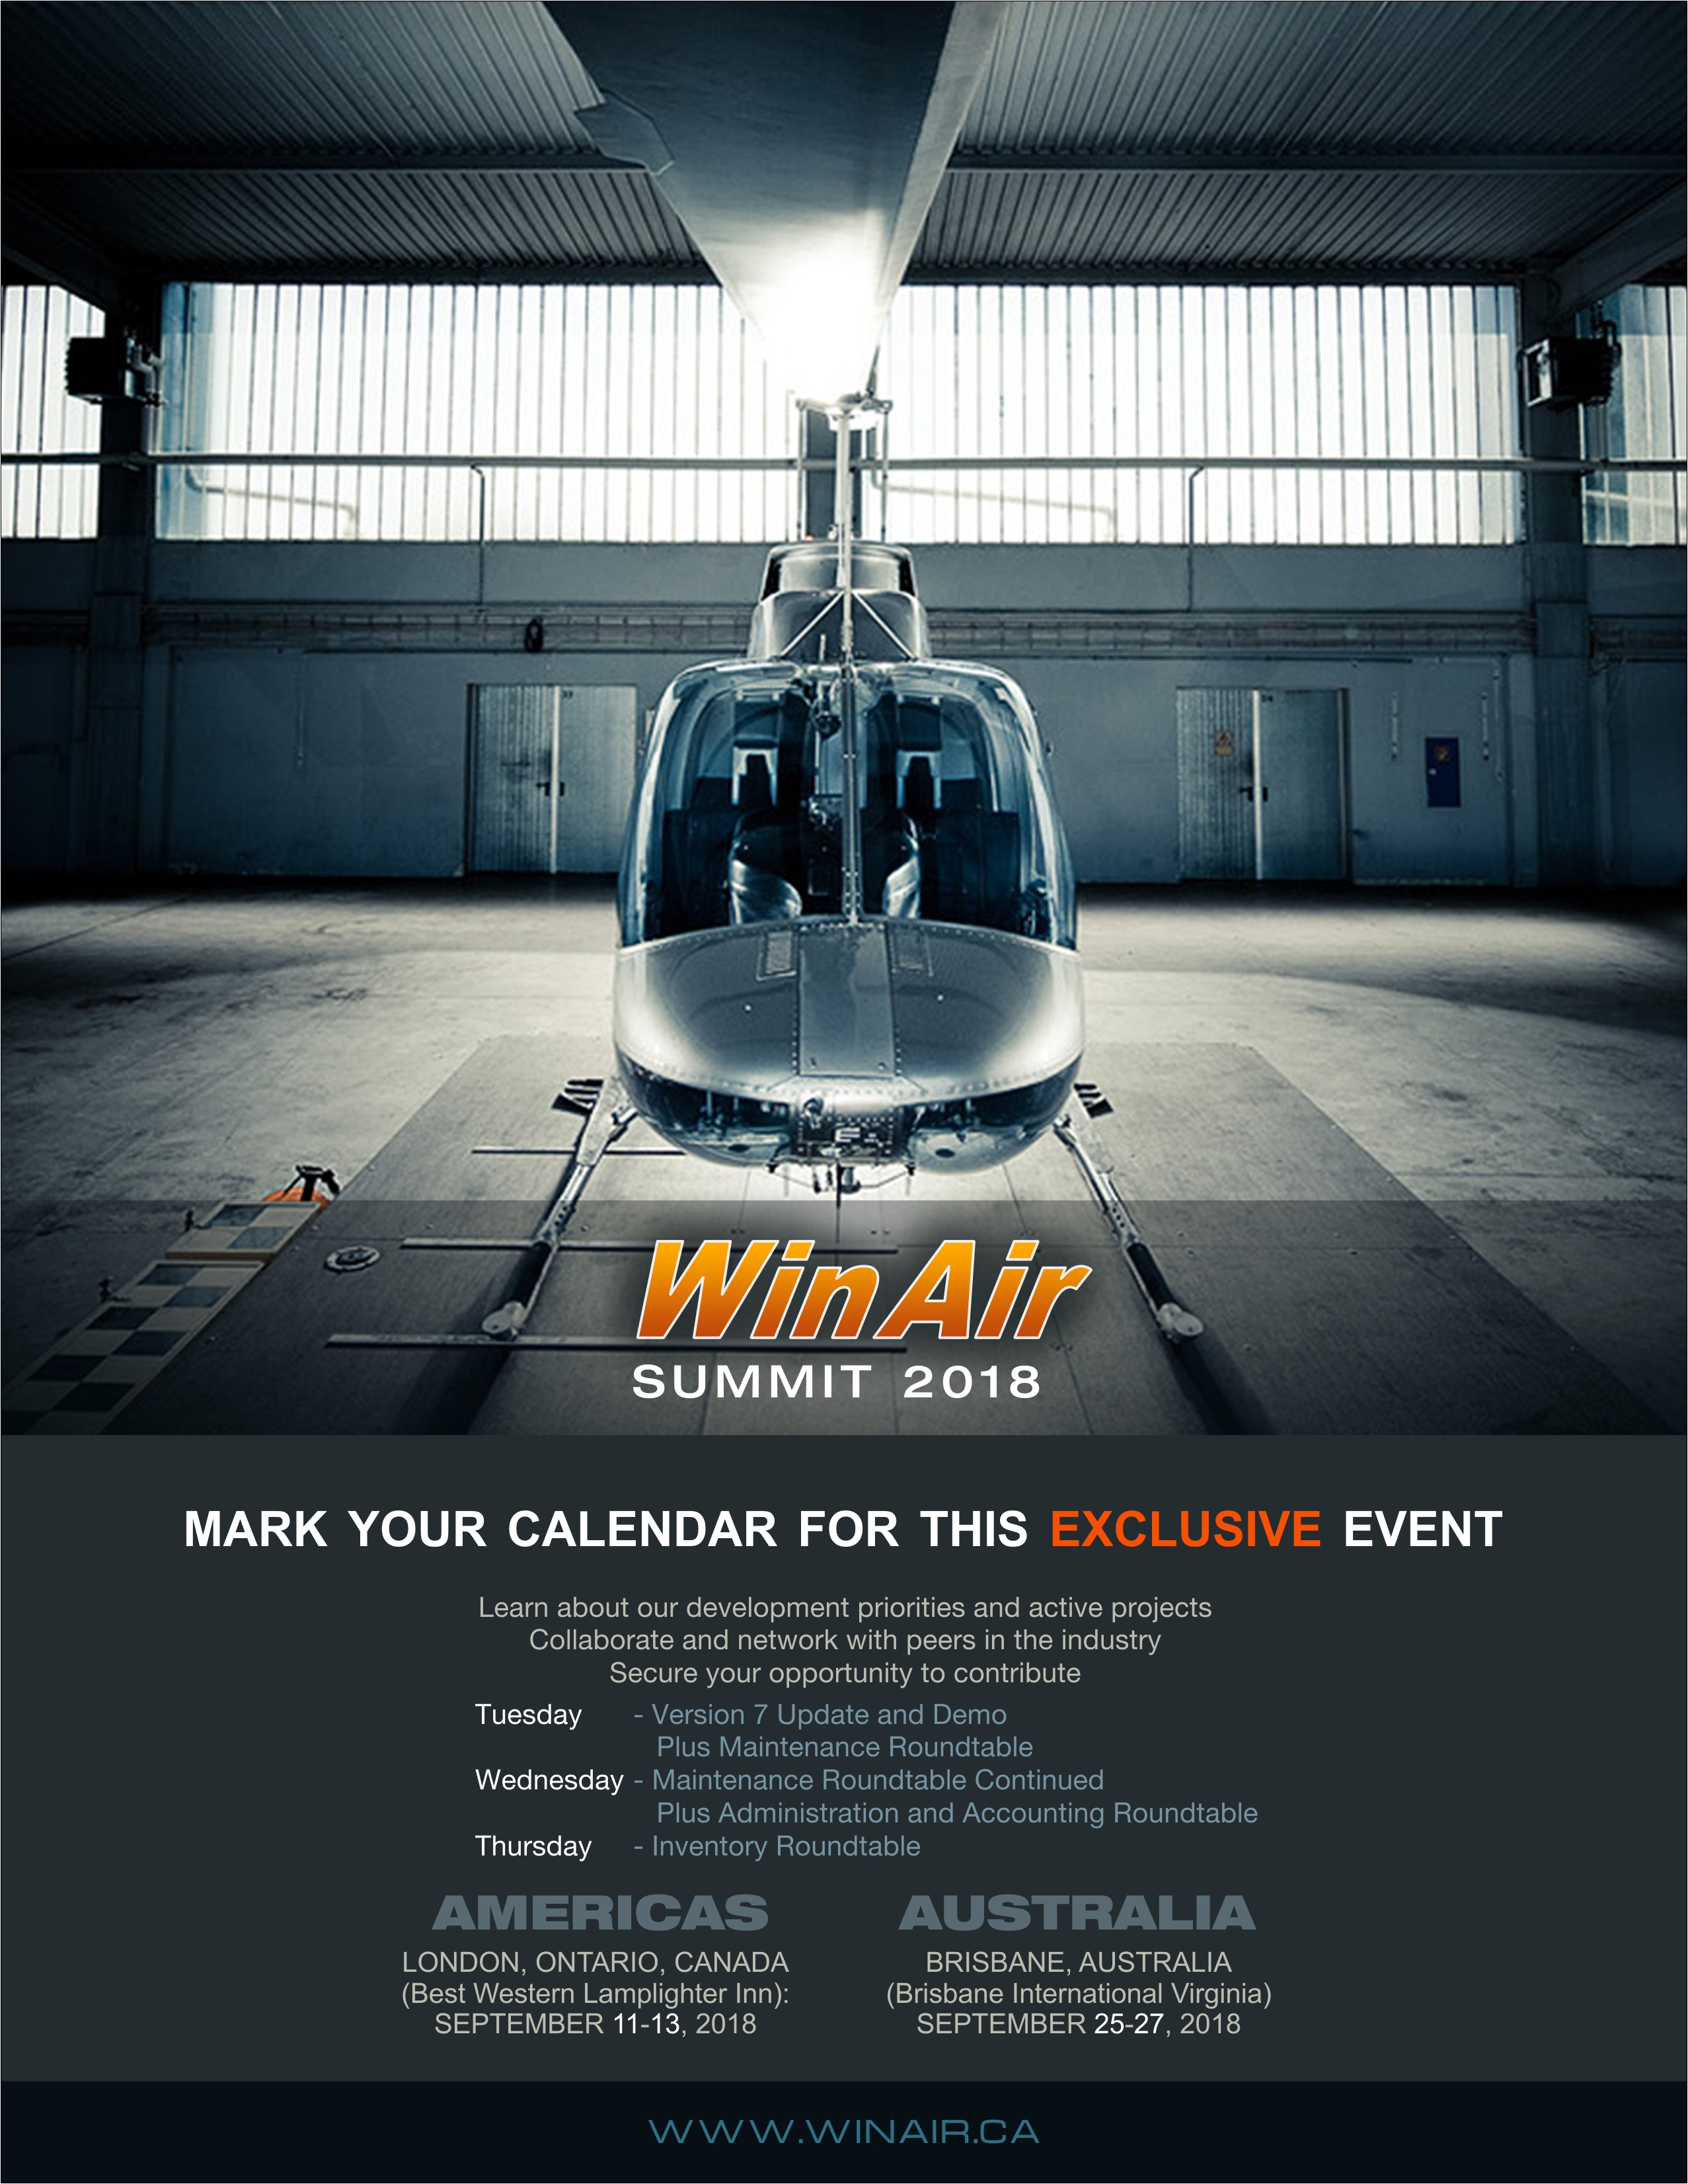 WinAir 2018 User Summit Promotional Image